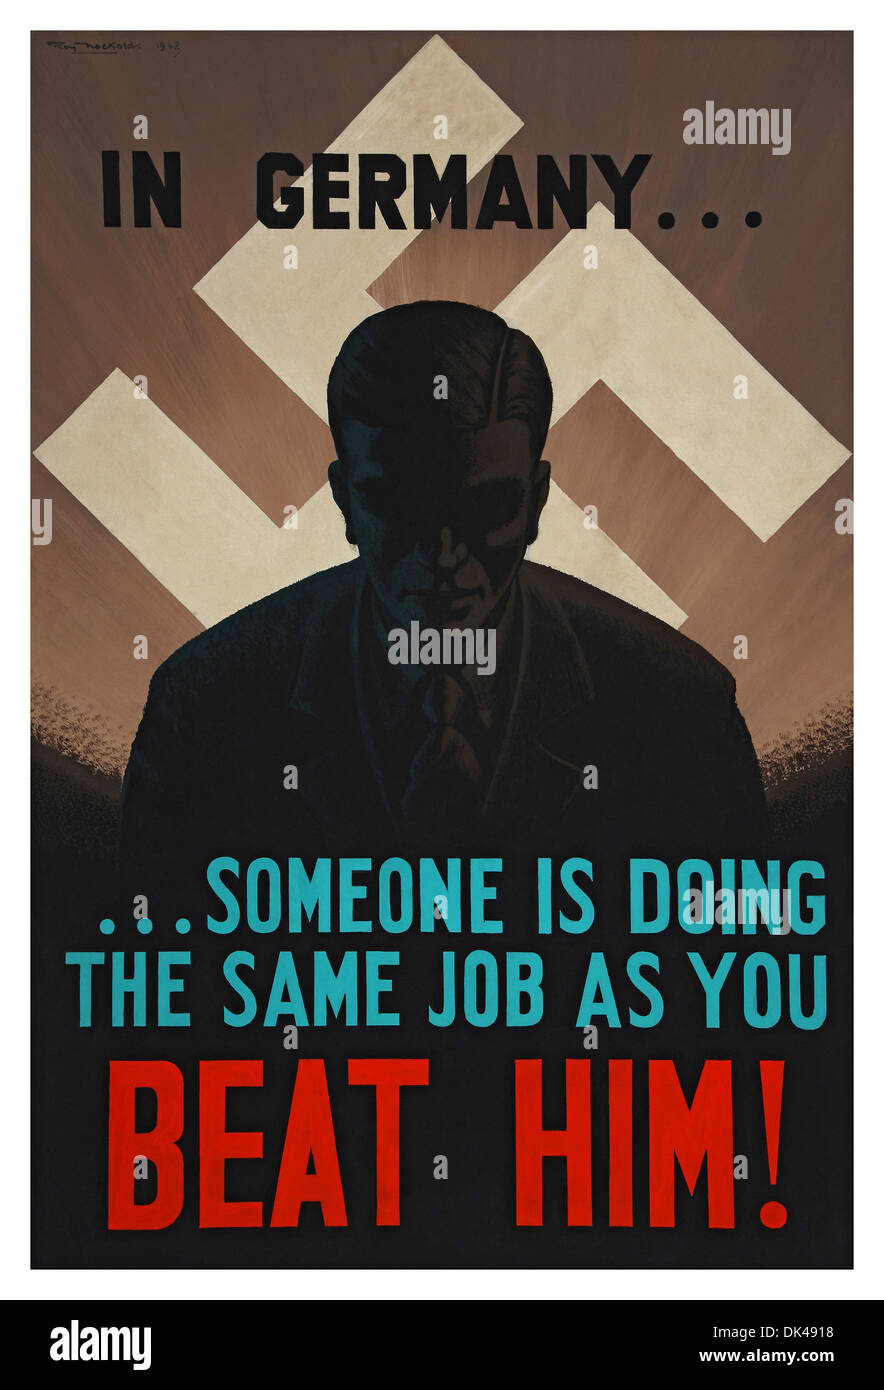 Ww2 propaganda poster with swastika symbol of the nazi party stock ww2 propaganda poster with swastika symbol of the nazi party promoting hard work at home in the uk biocorpaavc Images